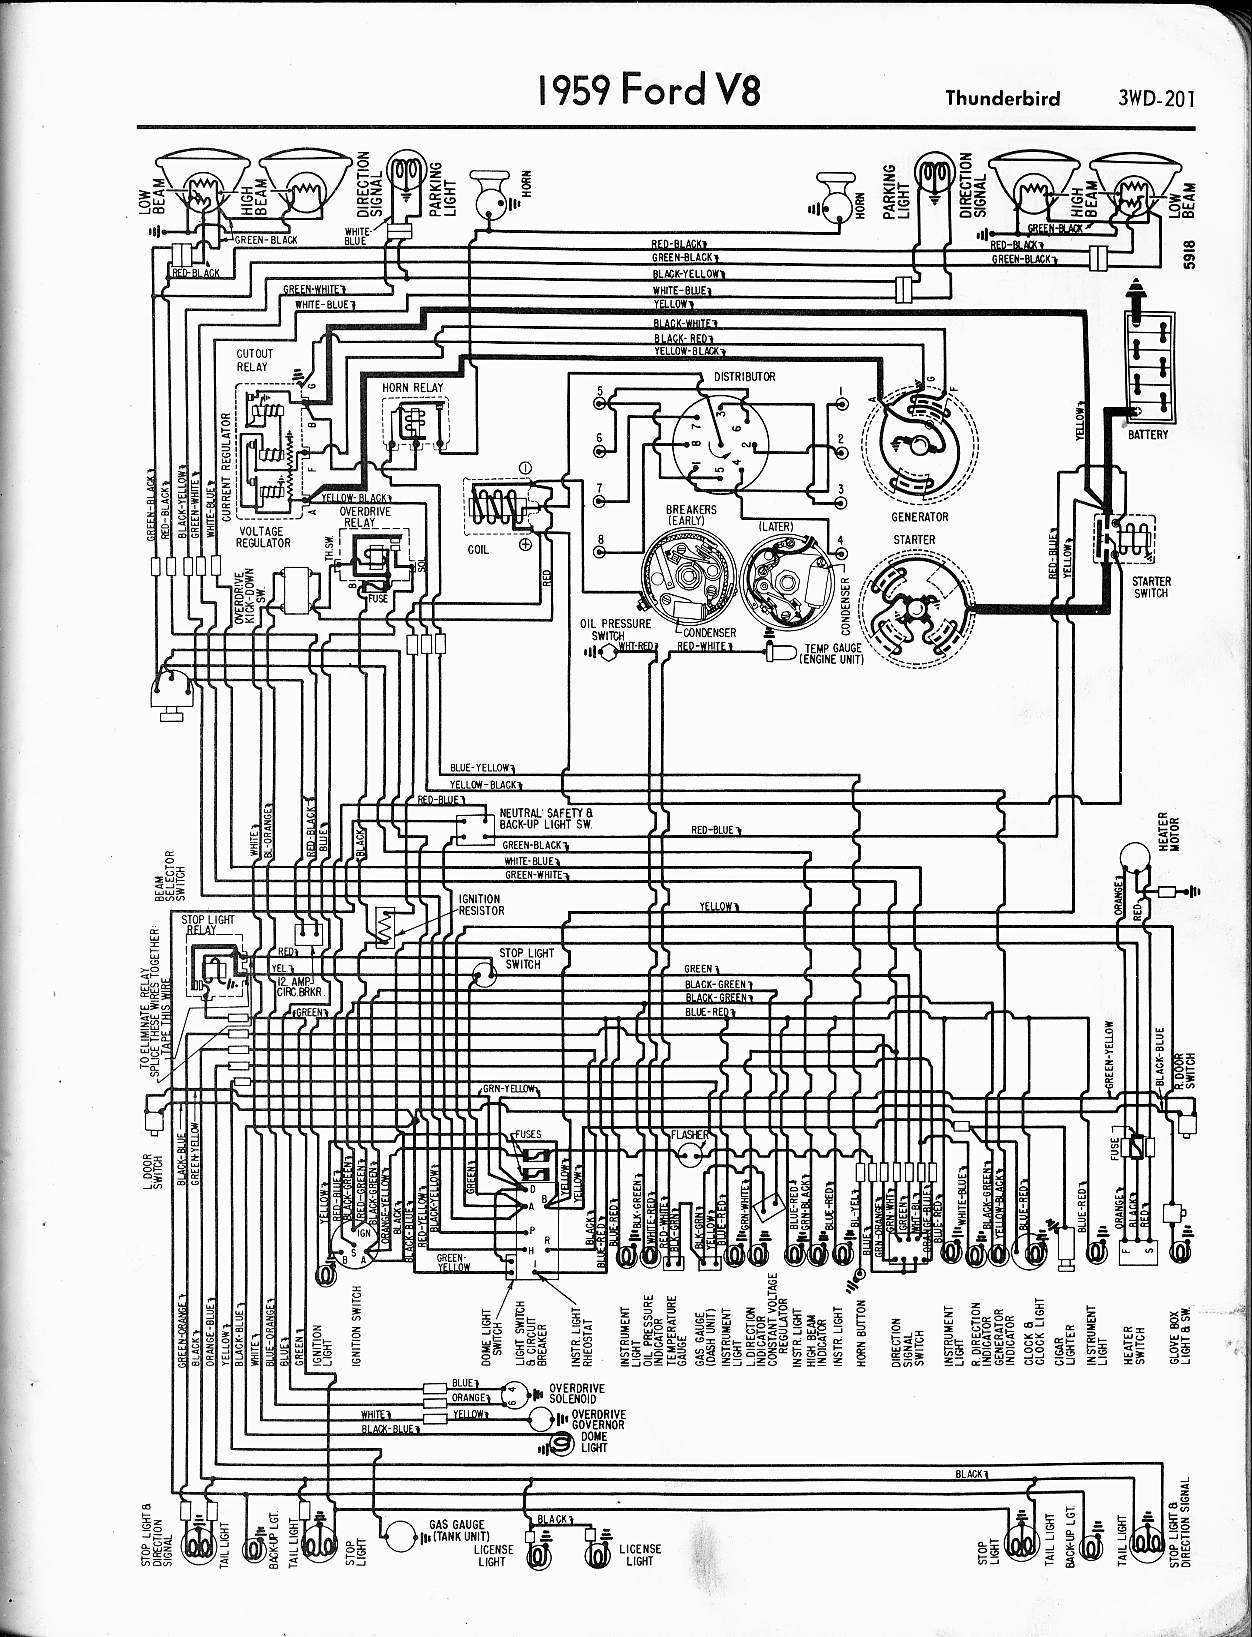 Sensational 57 65 Ford Wiring Diagrams Wiring Cloud Lukepaidewilluminateatxorg